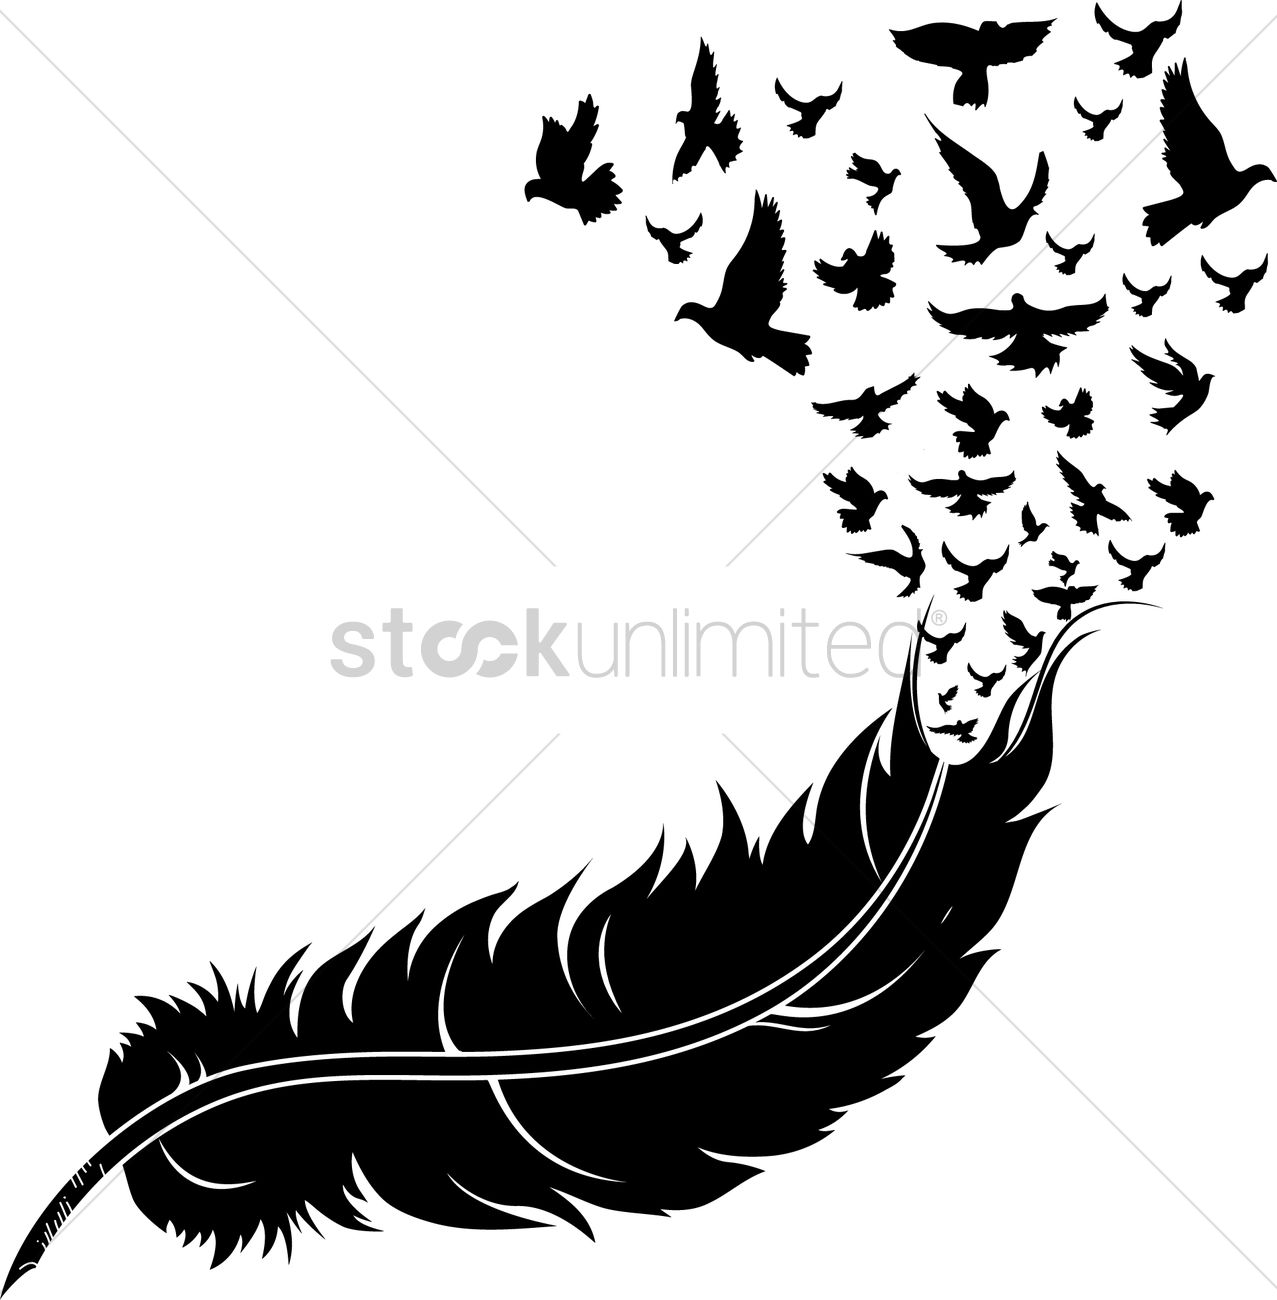 Feather Turning Into Birds Silhouette.